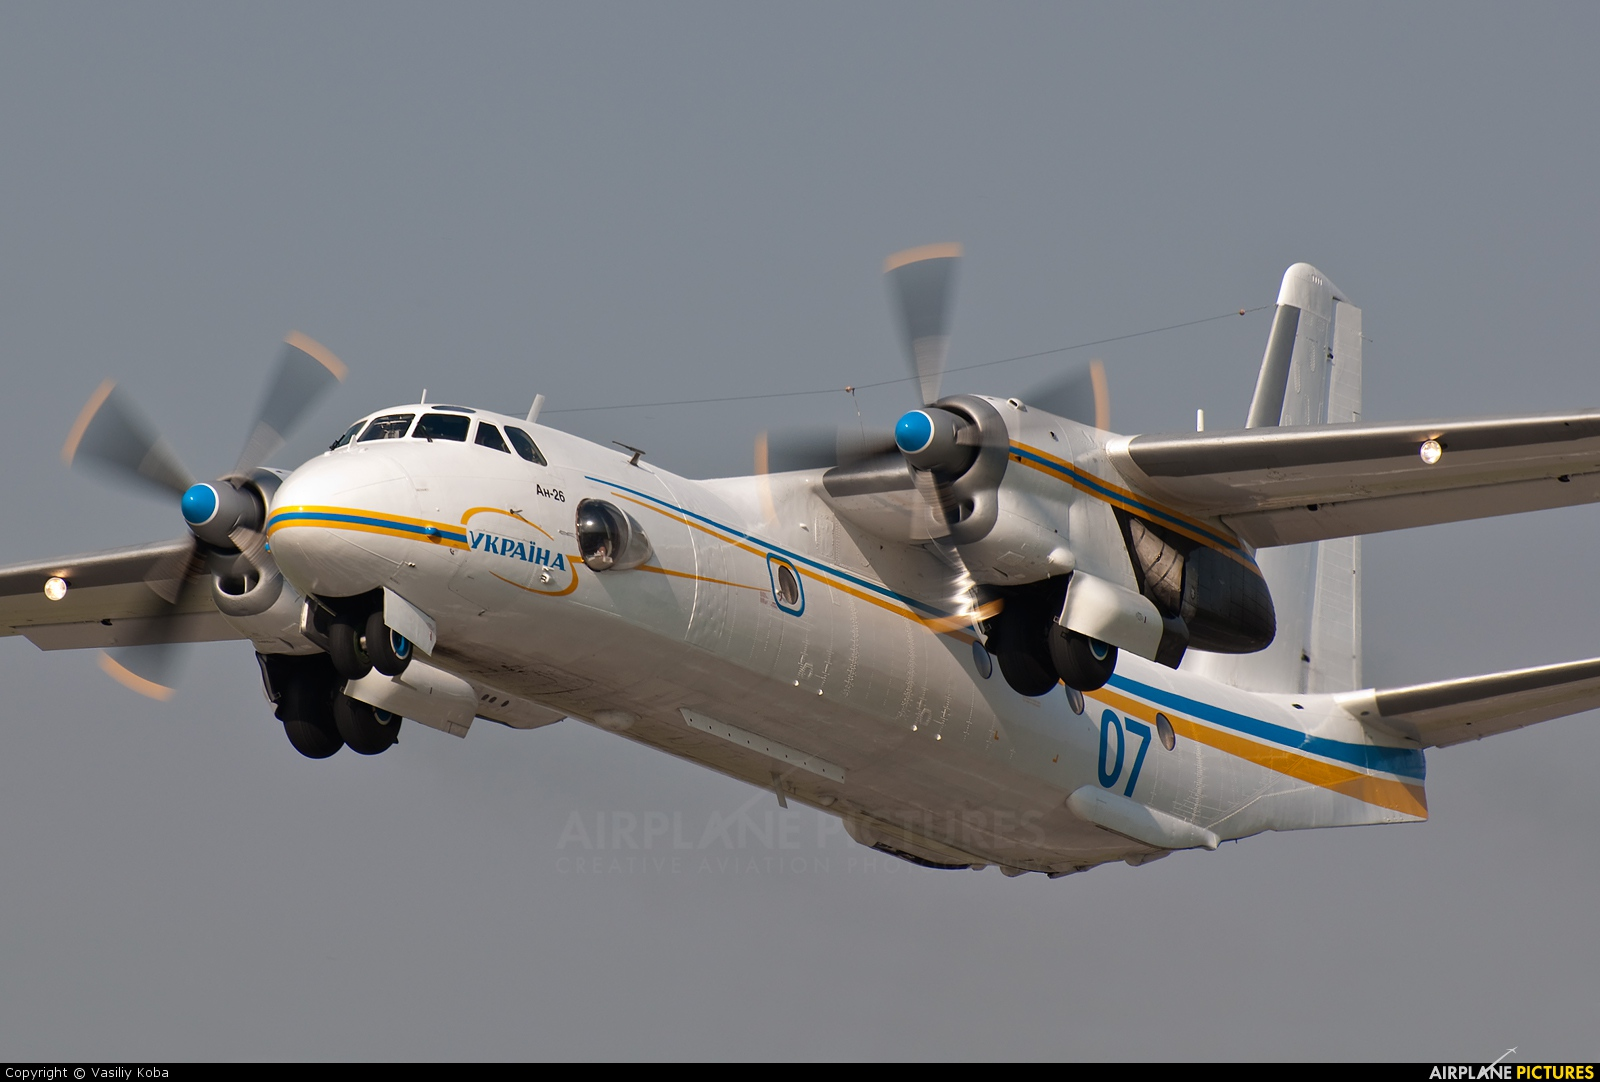 Ukraine - Ministry of Internal Affairs 07 aircraft at Kyiv - Zhulyany